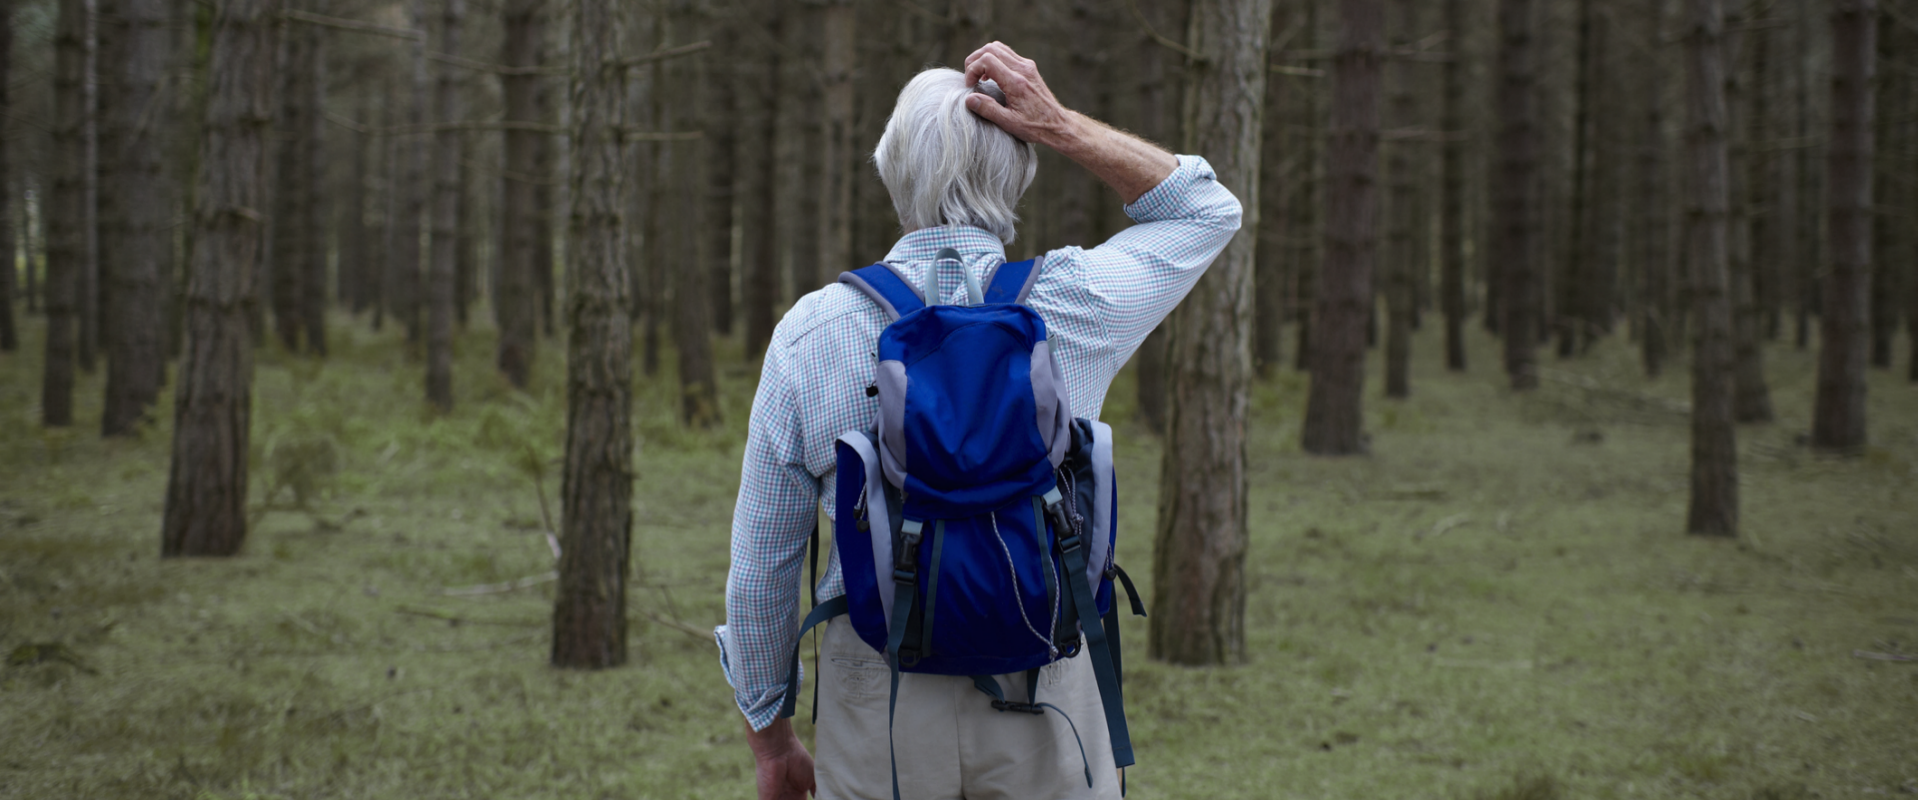 man lost in woods scratching his head